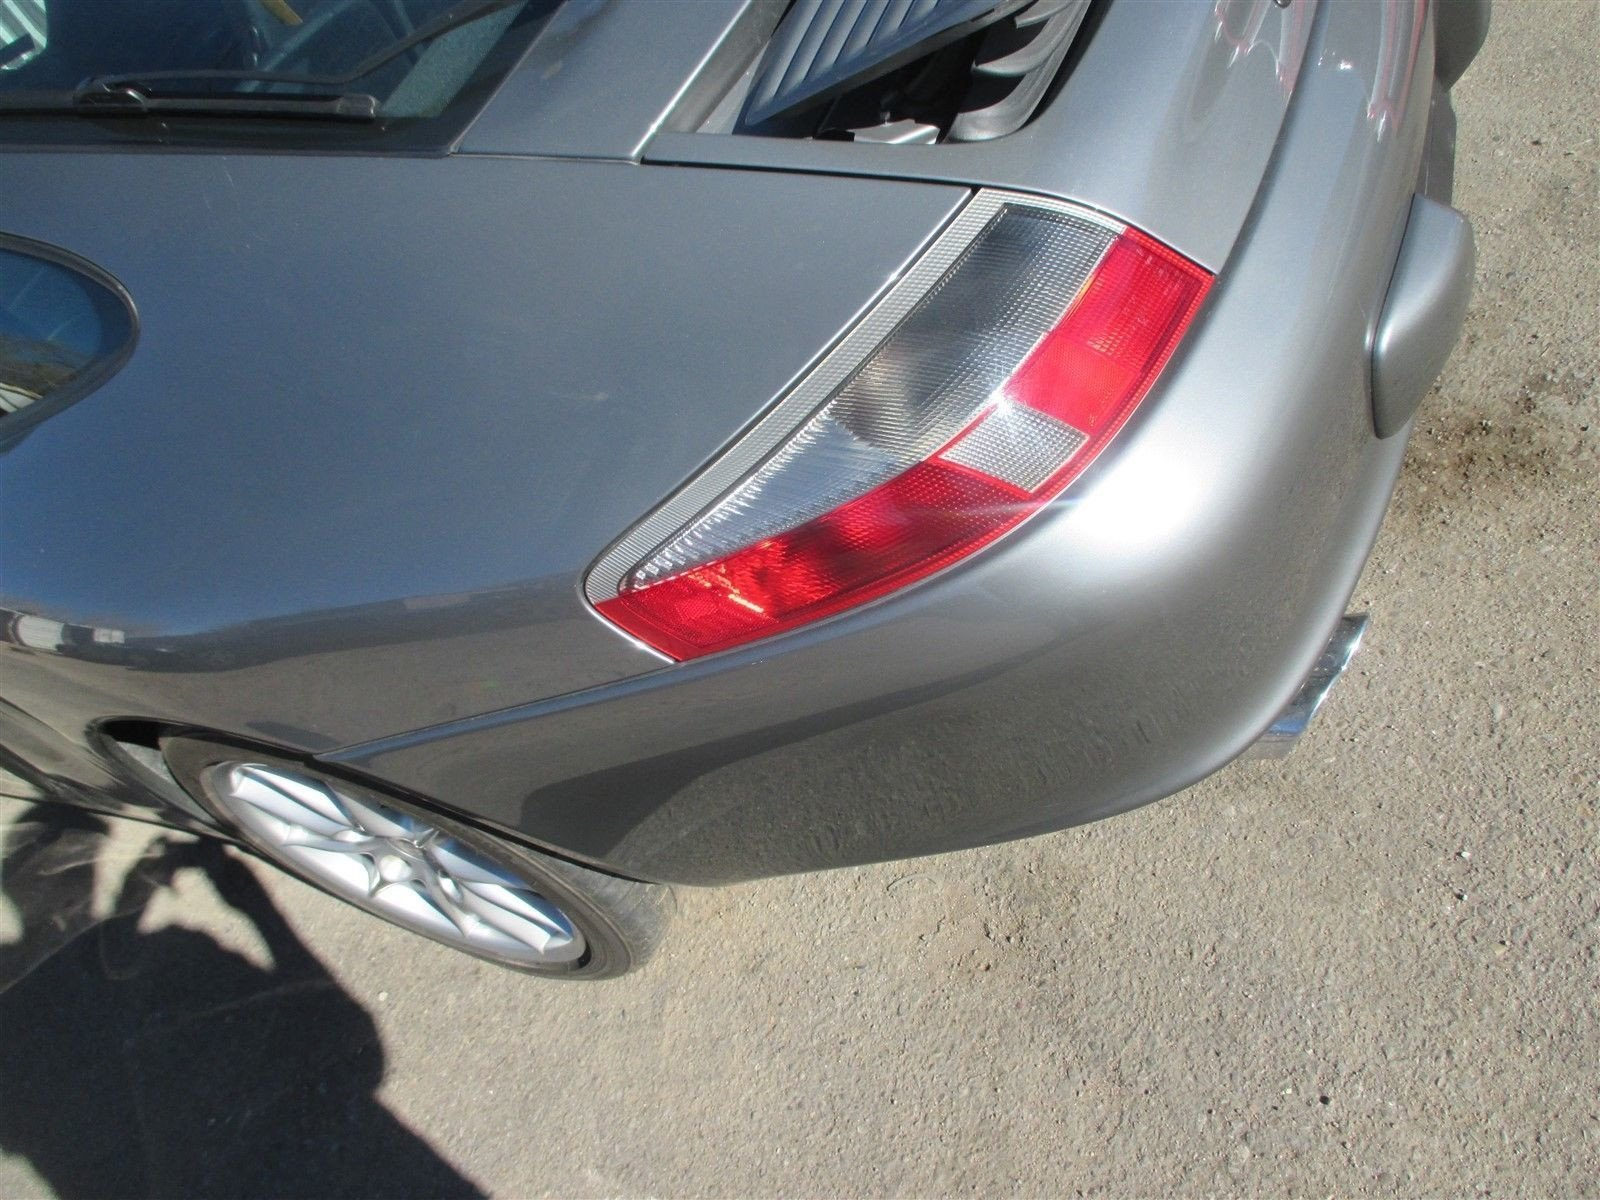 02 Carrera 911 RWD Porsche 996 Coupe Parting Out parts car 38,326